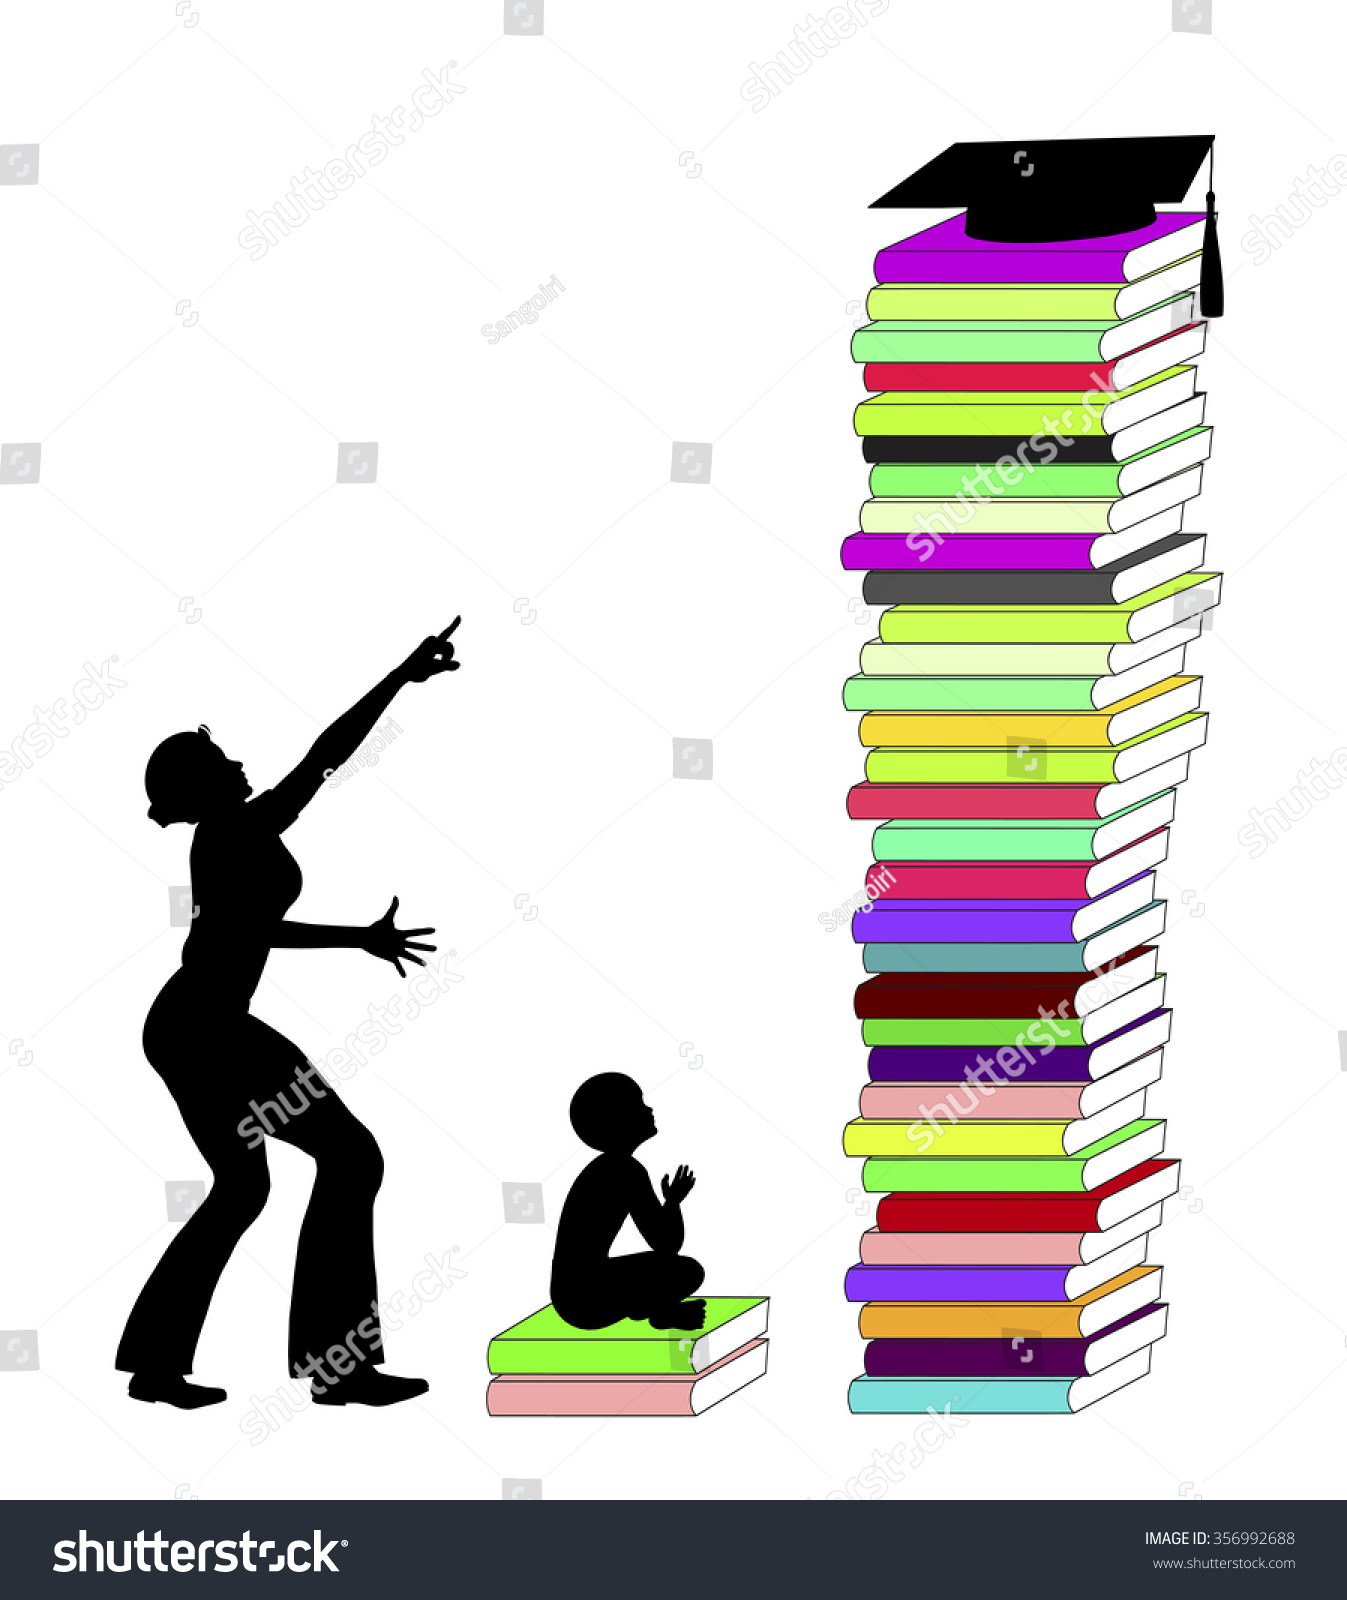 parental academic expectations mother exaggerated ambitions stock mother exaggerated ambitions for the academic career of her child